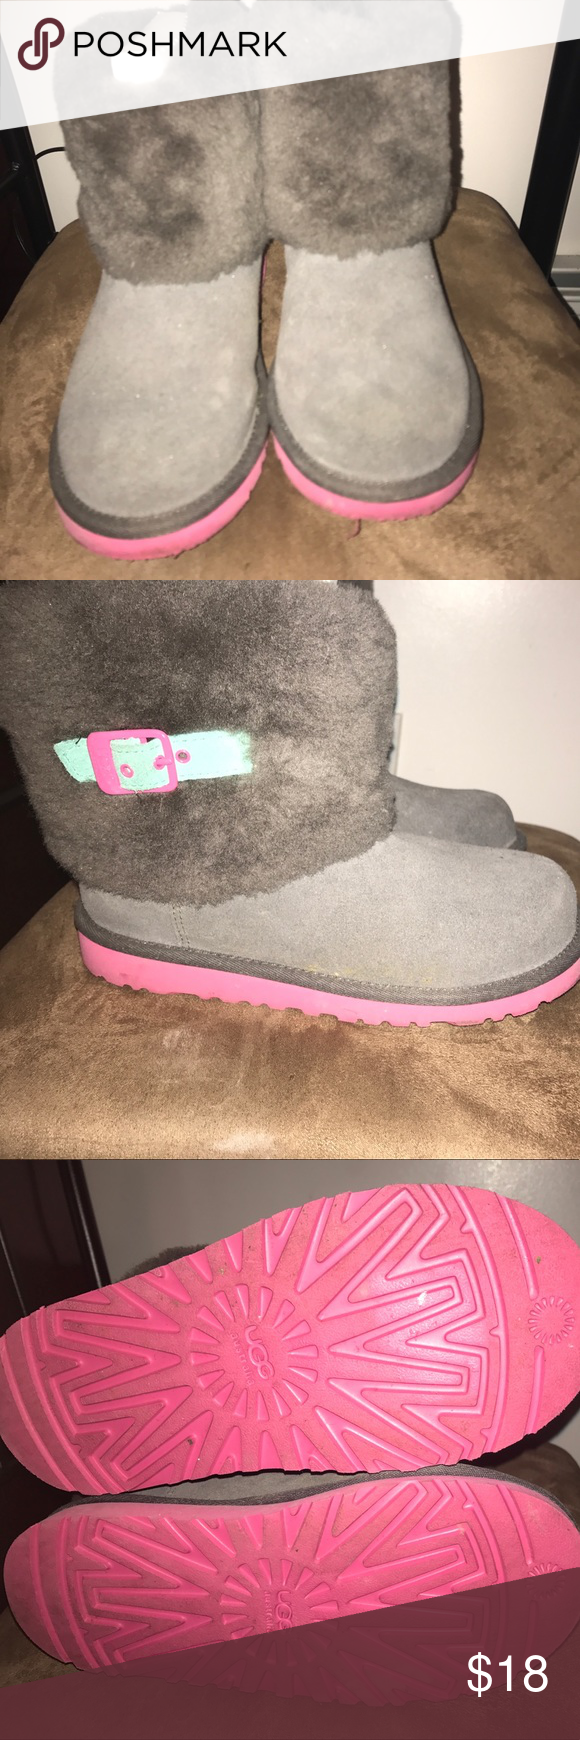 UGGs size 5 for Women/Girls Gray/Pink/Blue